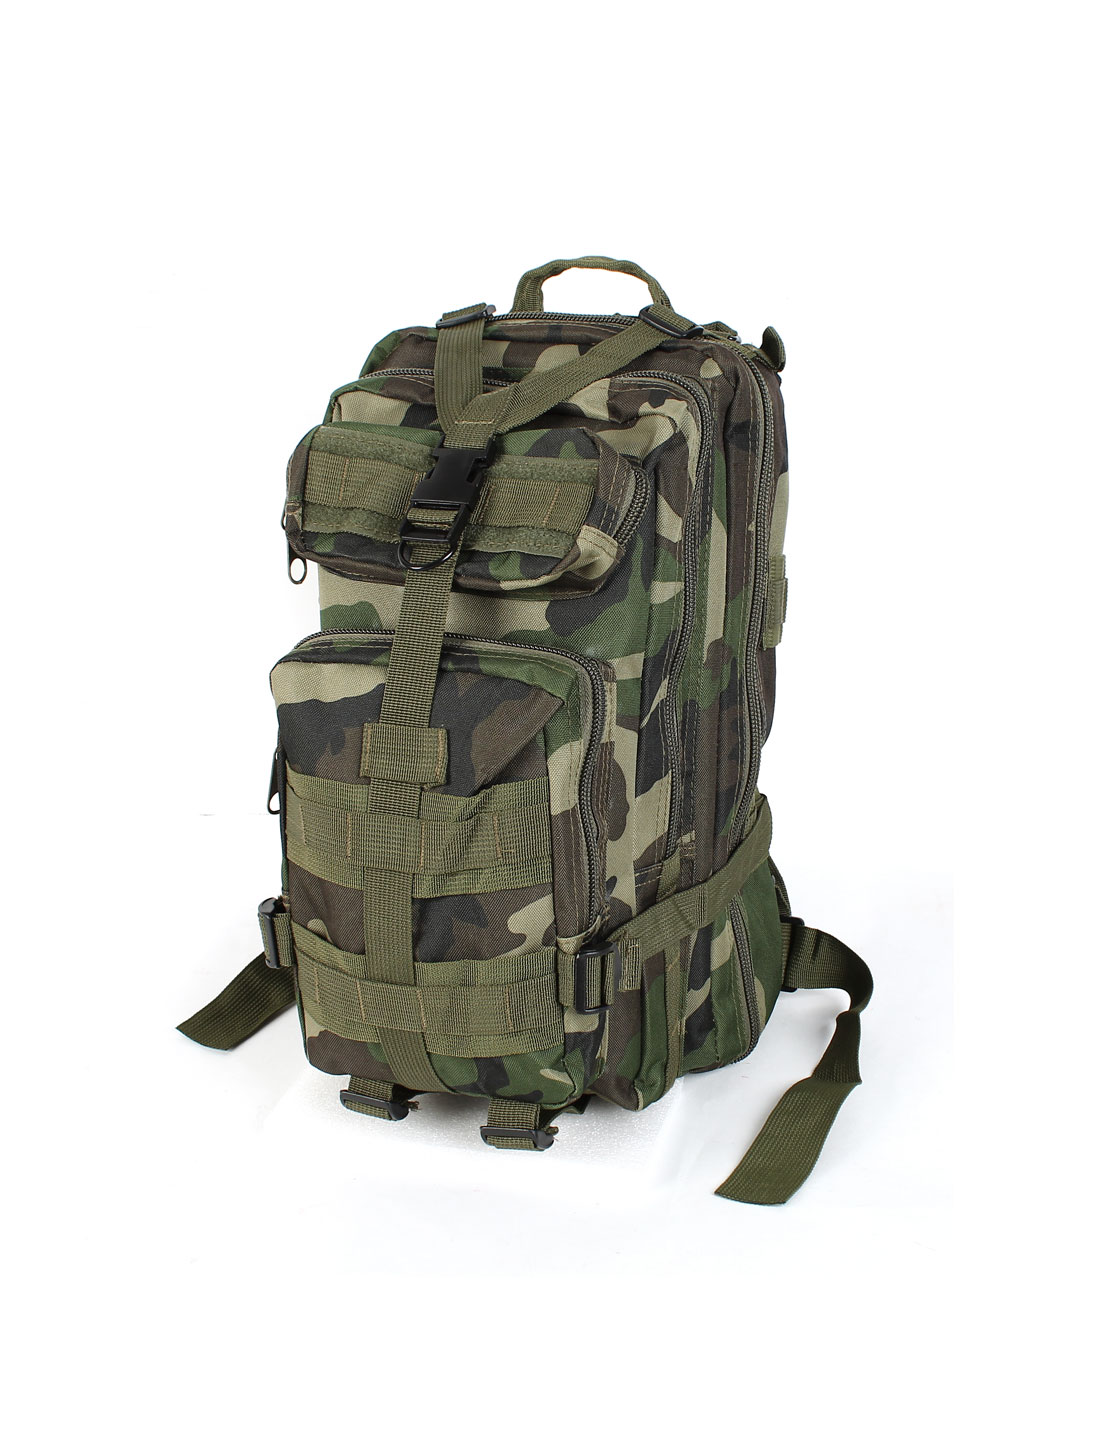 Military Tactical Dual Shoulder Strap Camouflage Oxford Cloth Hiking Backpack